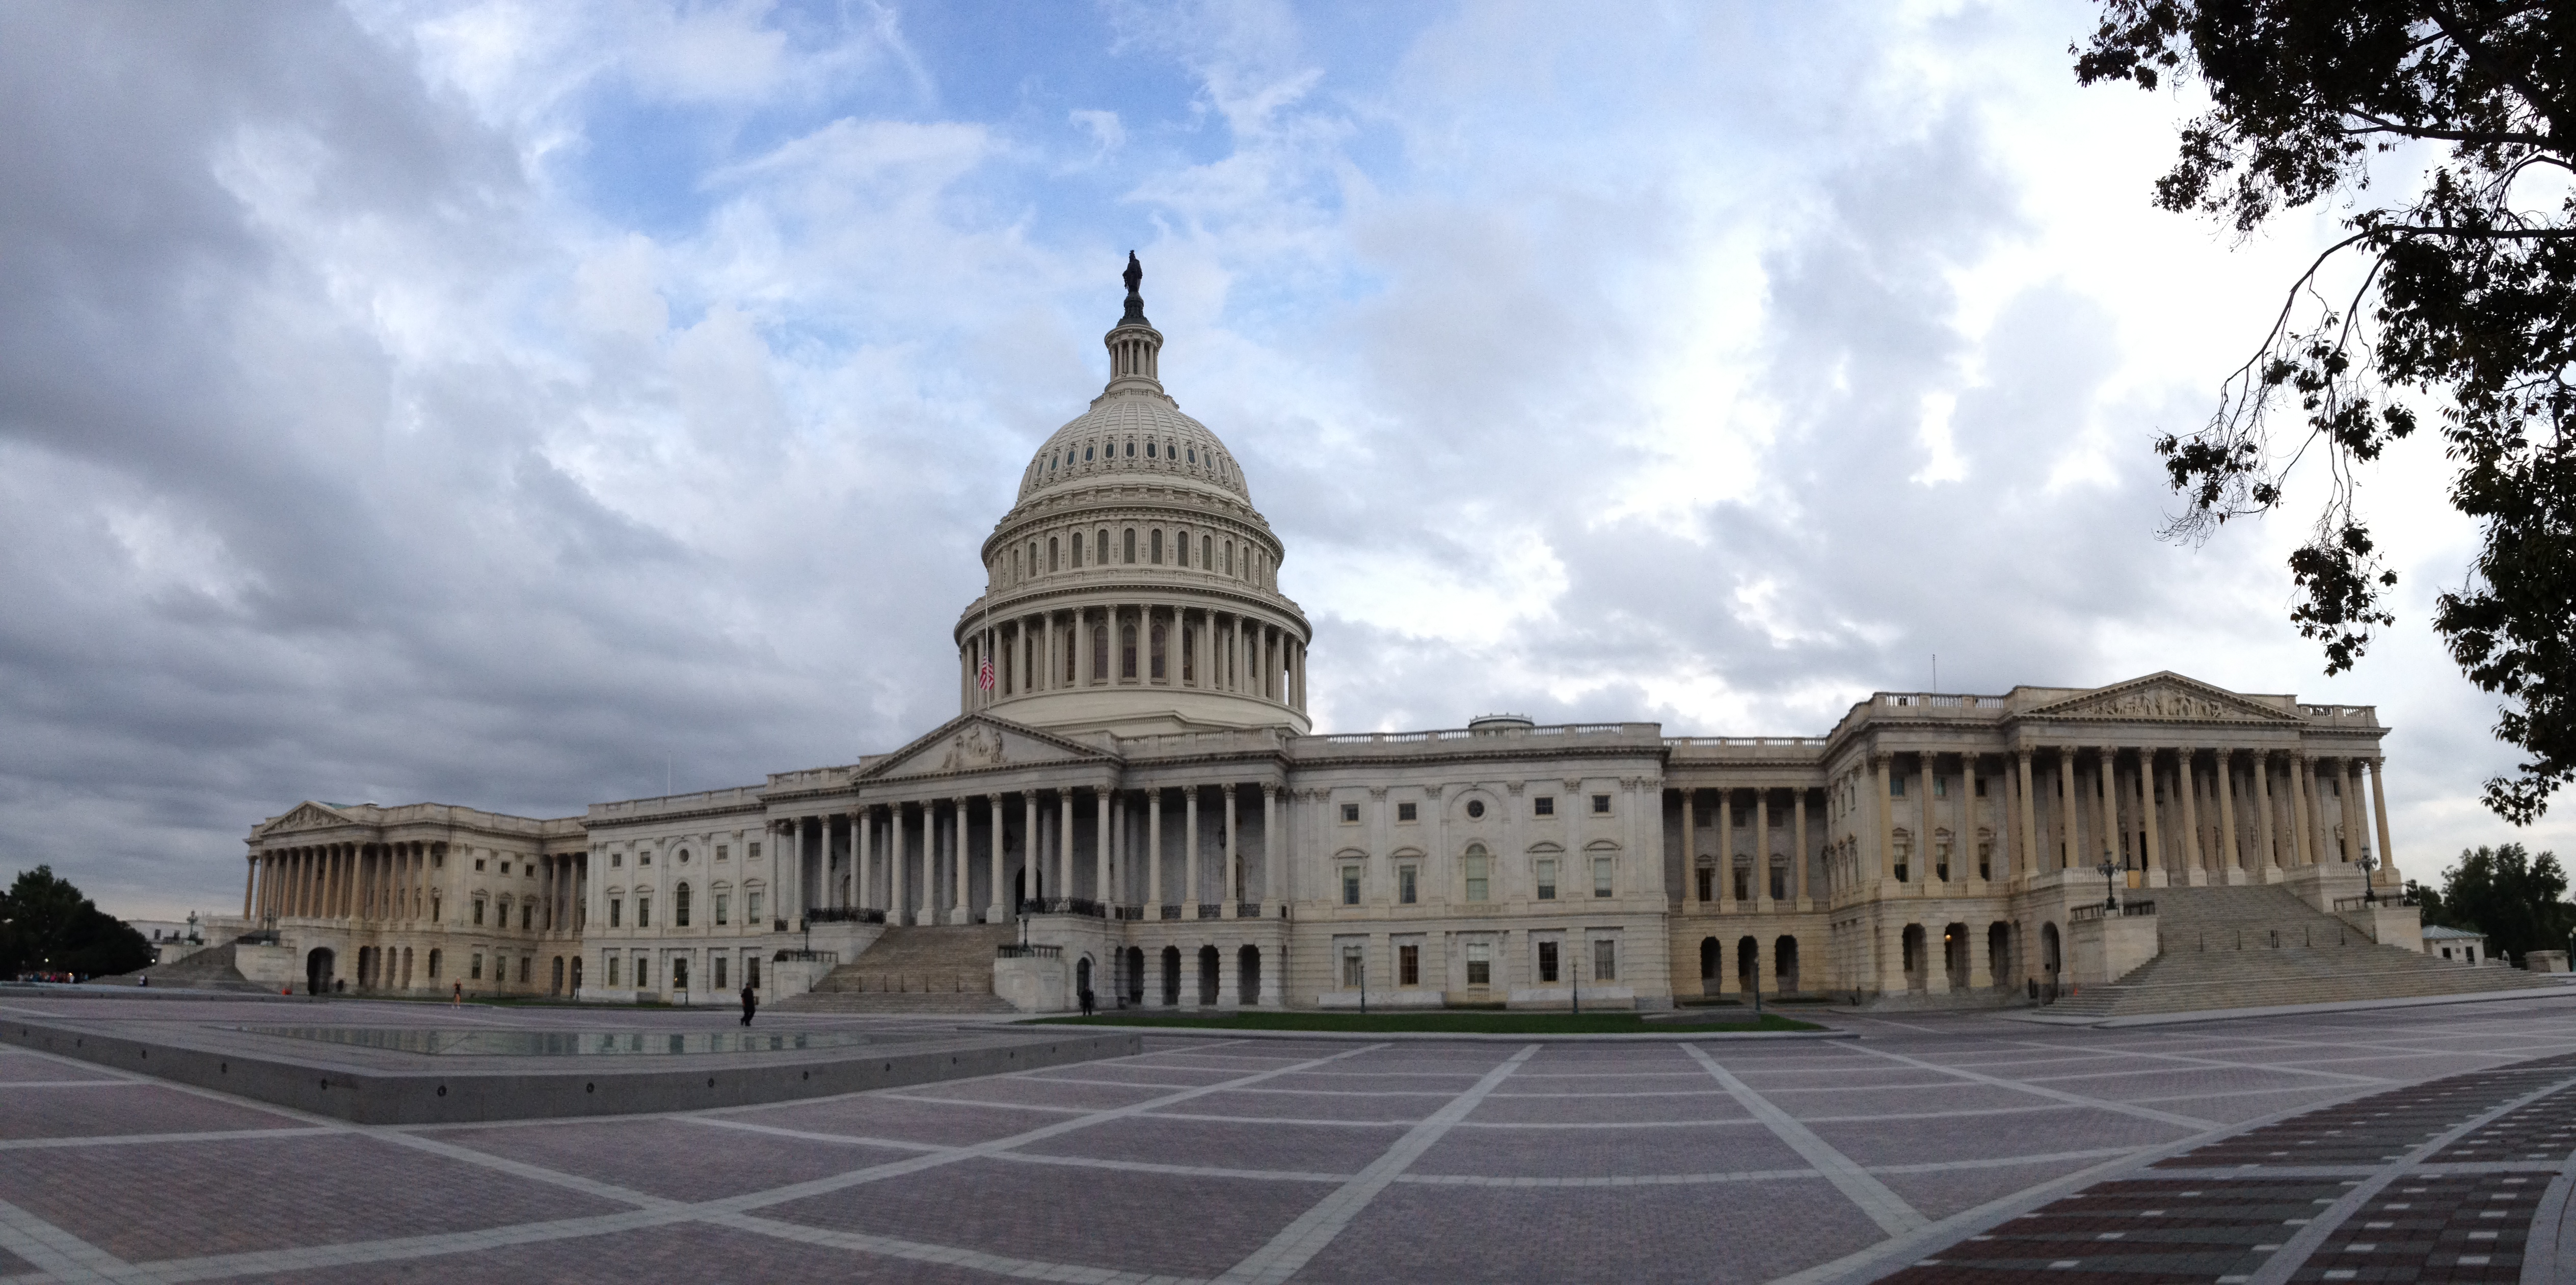 The Capitol building, Washington DC